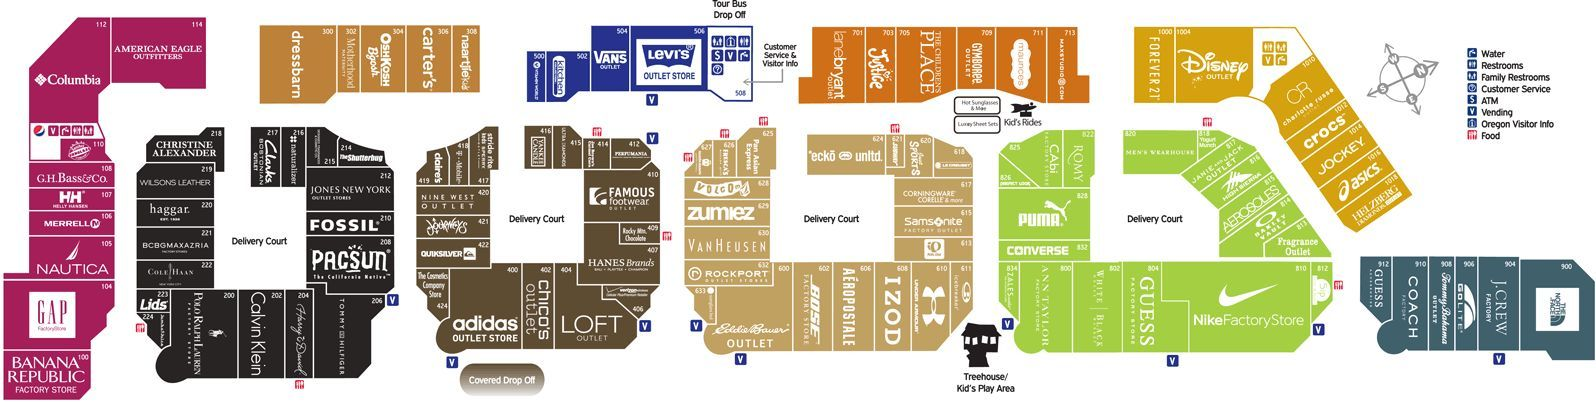 Woodburn Outlet Map Shopping with no sales tax! Woodburn Company Stores | So excited  Woodburn Outlet Map